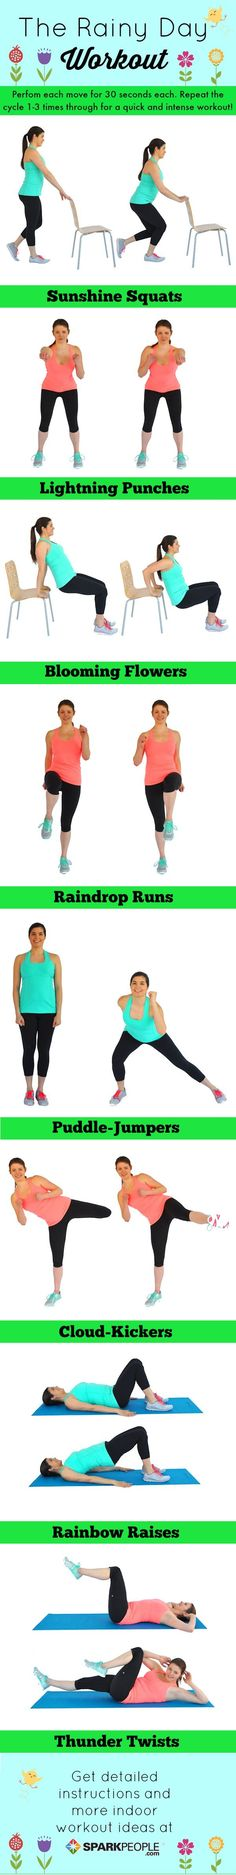 Don't let spring showers keep you from your exercise routine! This equipment-free workout features cardio and strength in heart-pumping combos that you can do at home! | via @SparkPeople #fitness #motivation